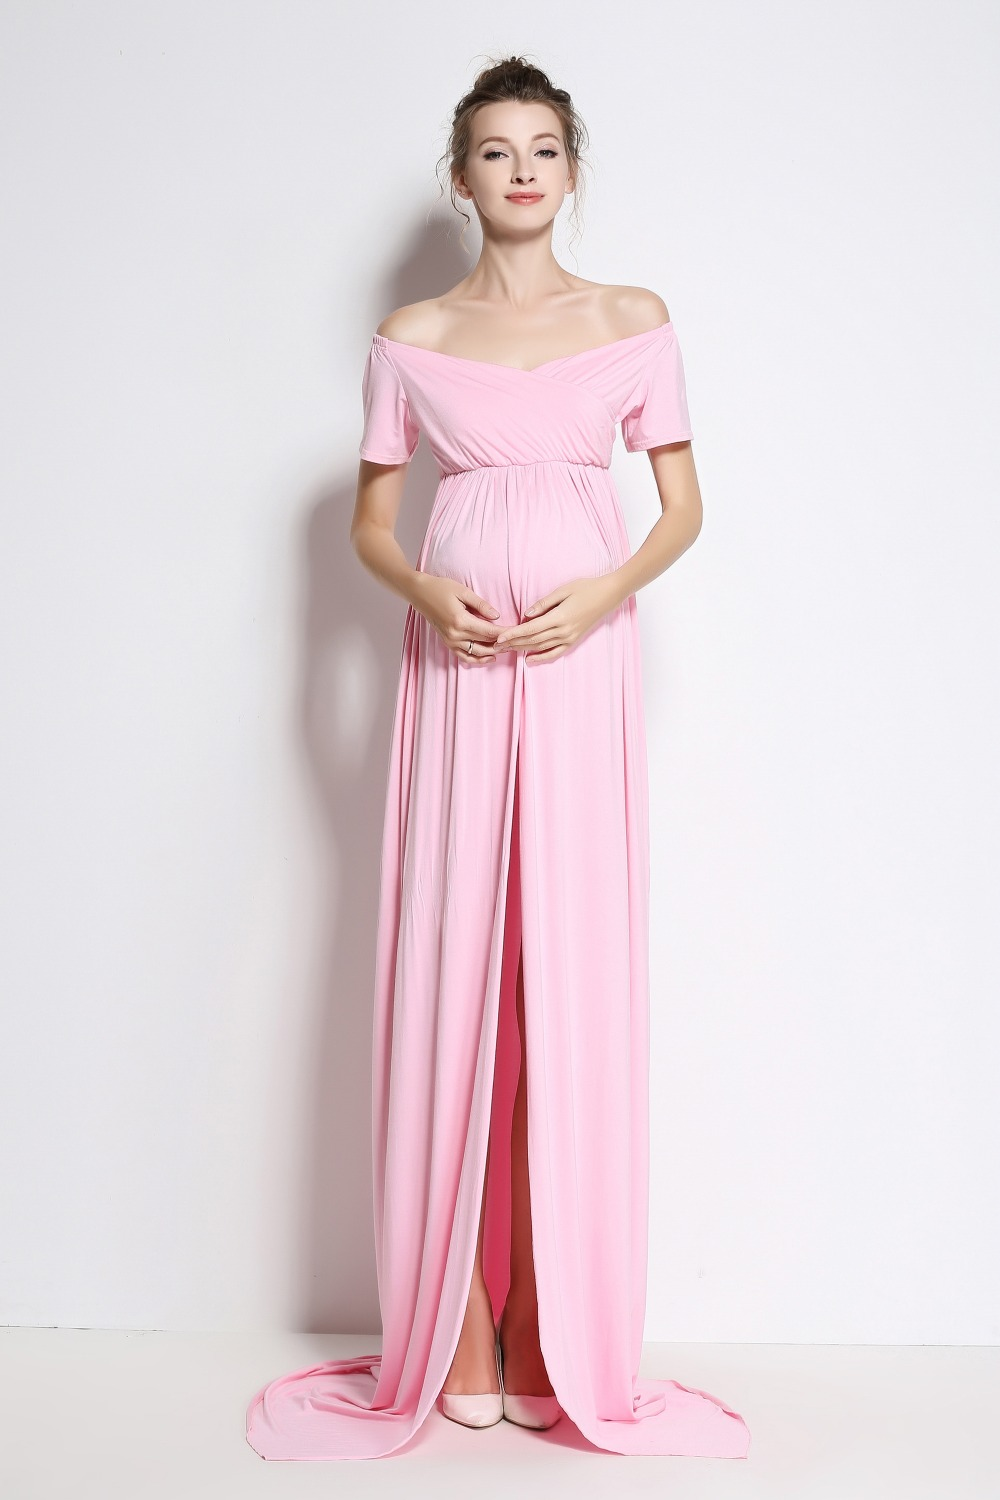 2017 New Cotton Maxi Maternity Dress Summer Clothes For Pregnant Women Long  Dresses For Photography Shoot